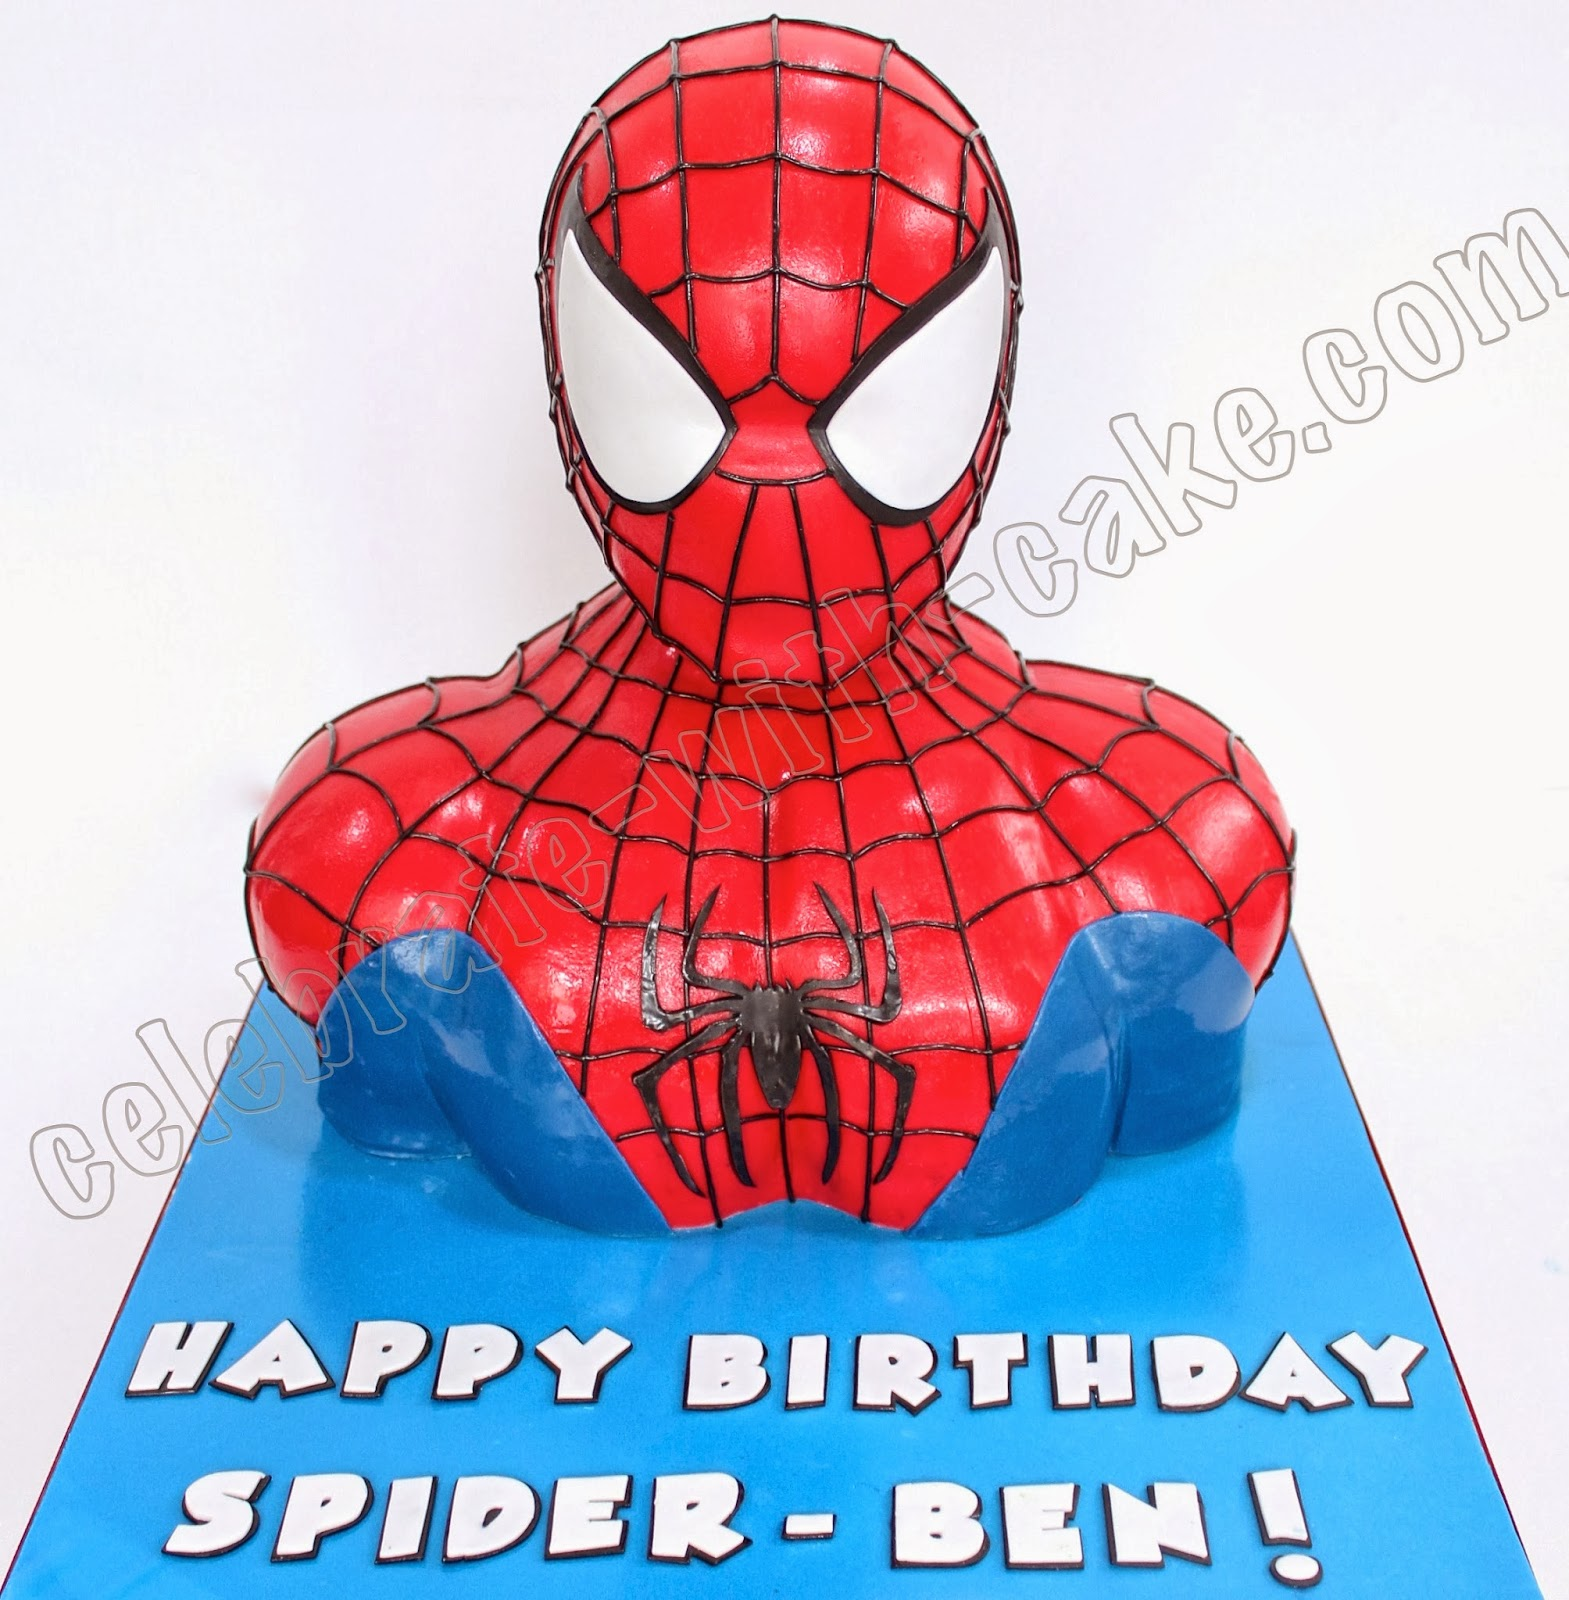 spiderman template for cake - celebrate with cake spiderman bust